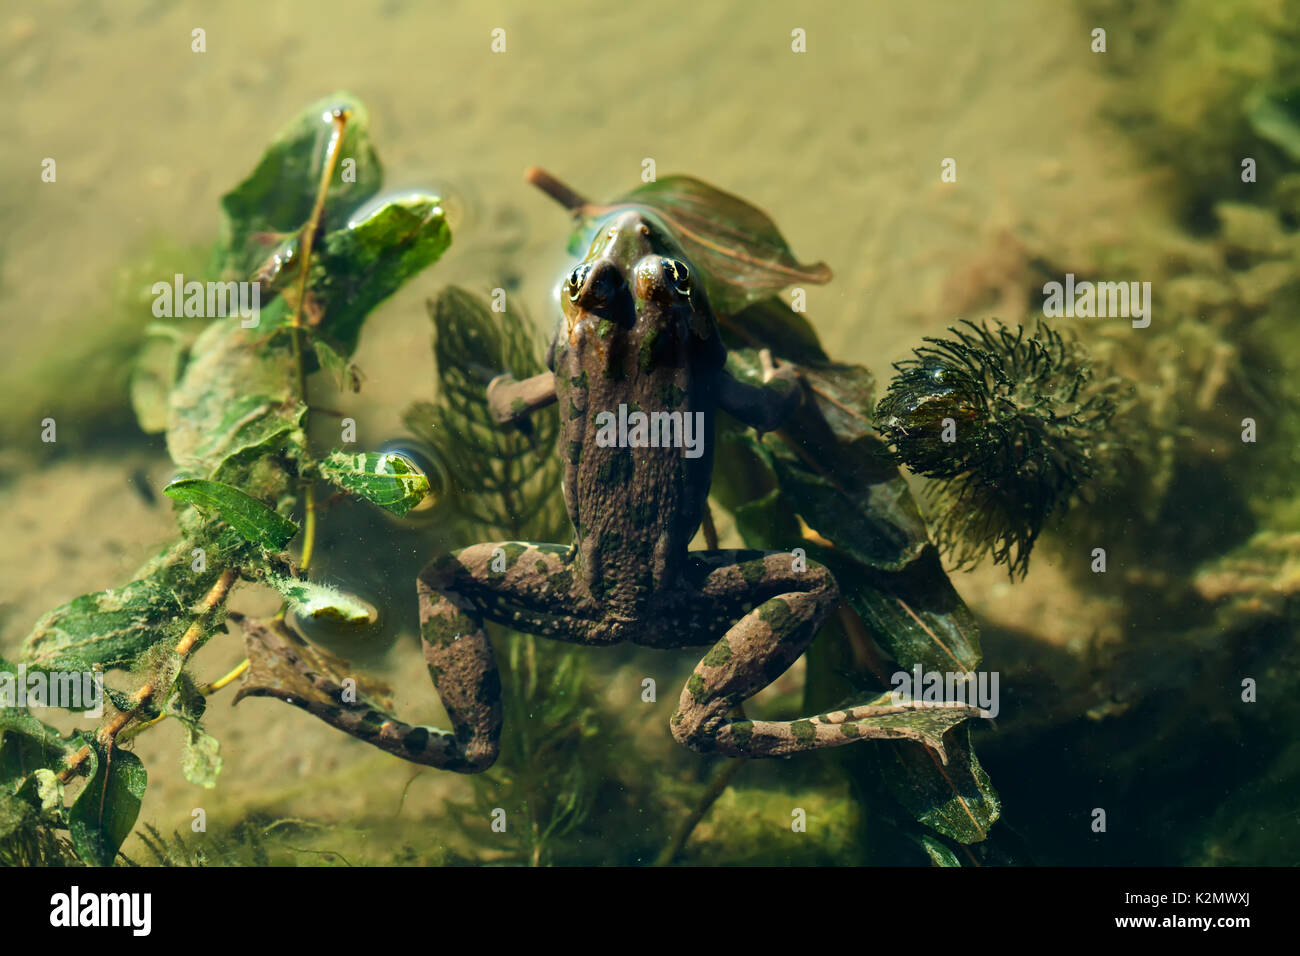 Natural habitat marsh frog green brown camouflage amphibian Pelophylax ridibundus. Up view, selective focus, river plants background - Stock Image